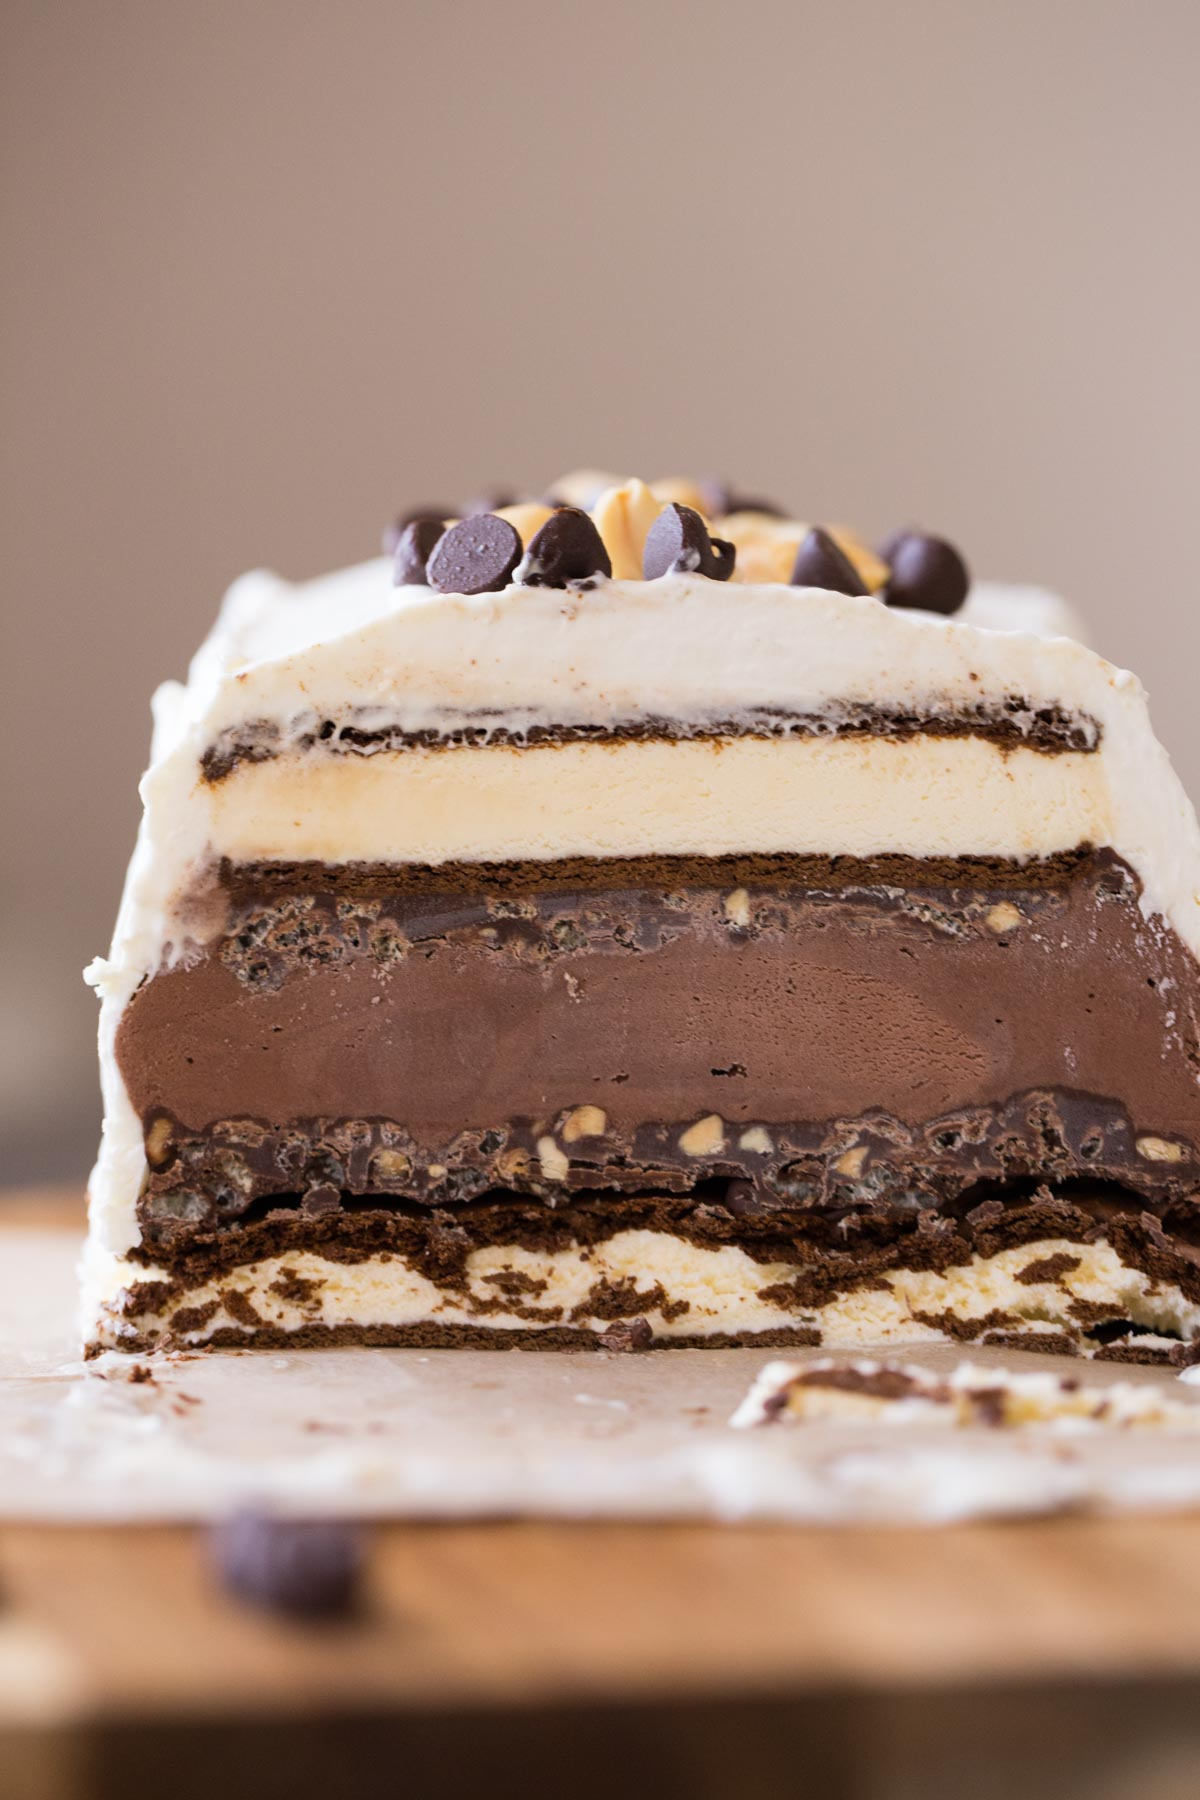 How To Make Crunchy Layer Of Ice Cream Cake